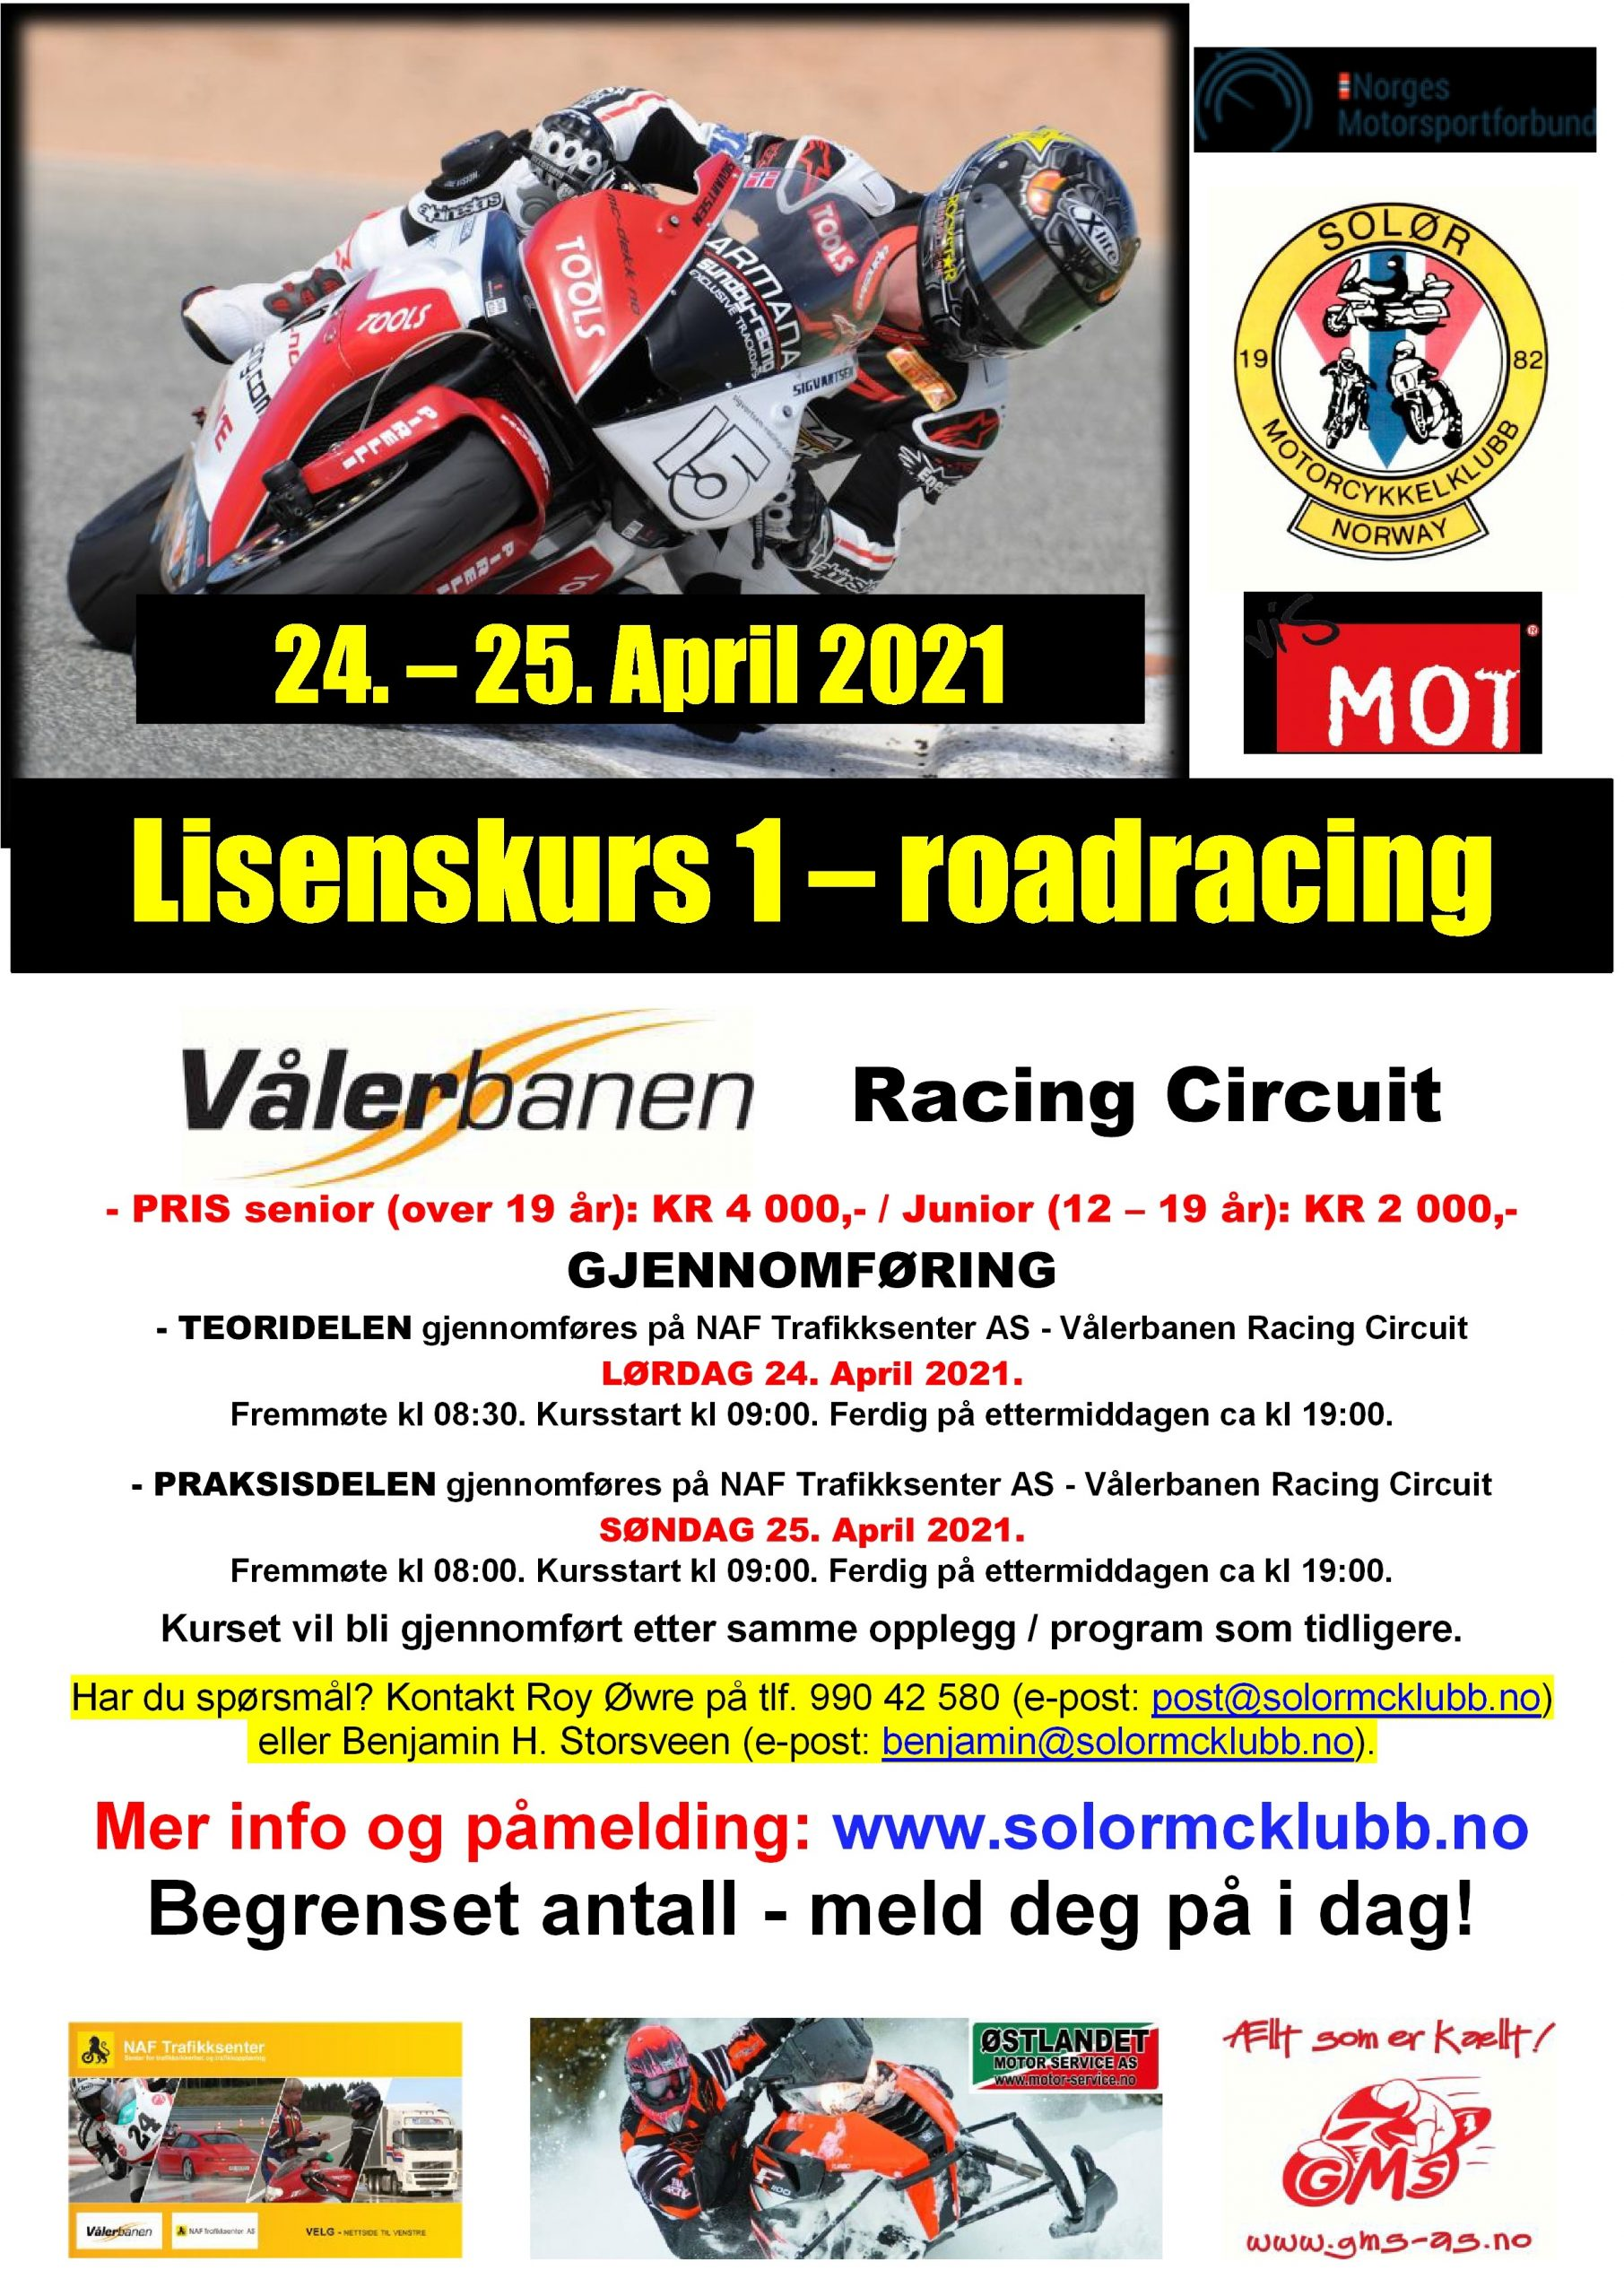 POSTER lisenskurs 1 - roadracing på Vålerbanen – APRIL 2021